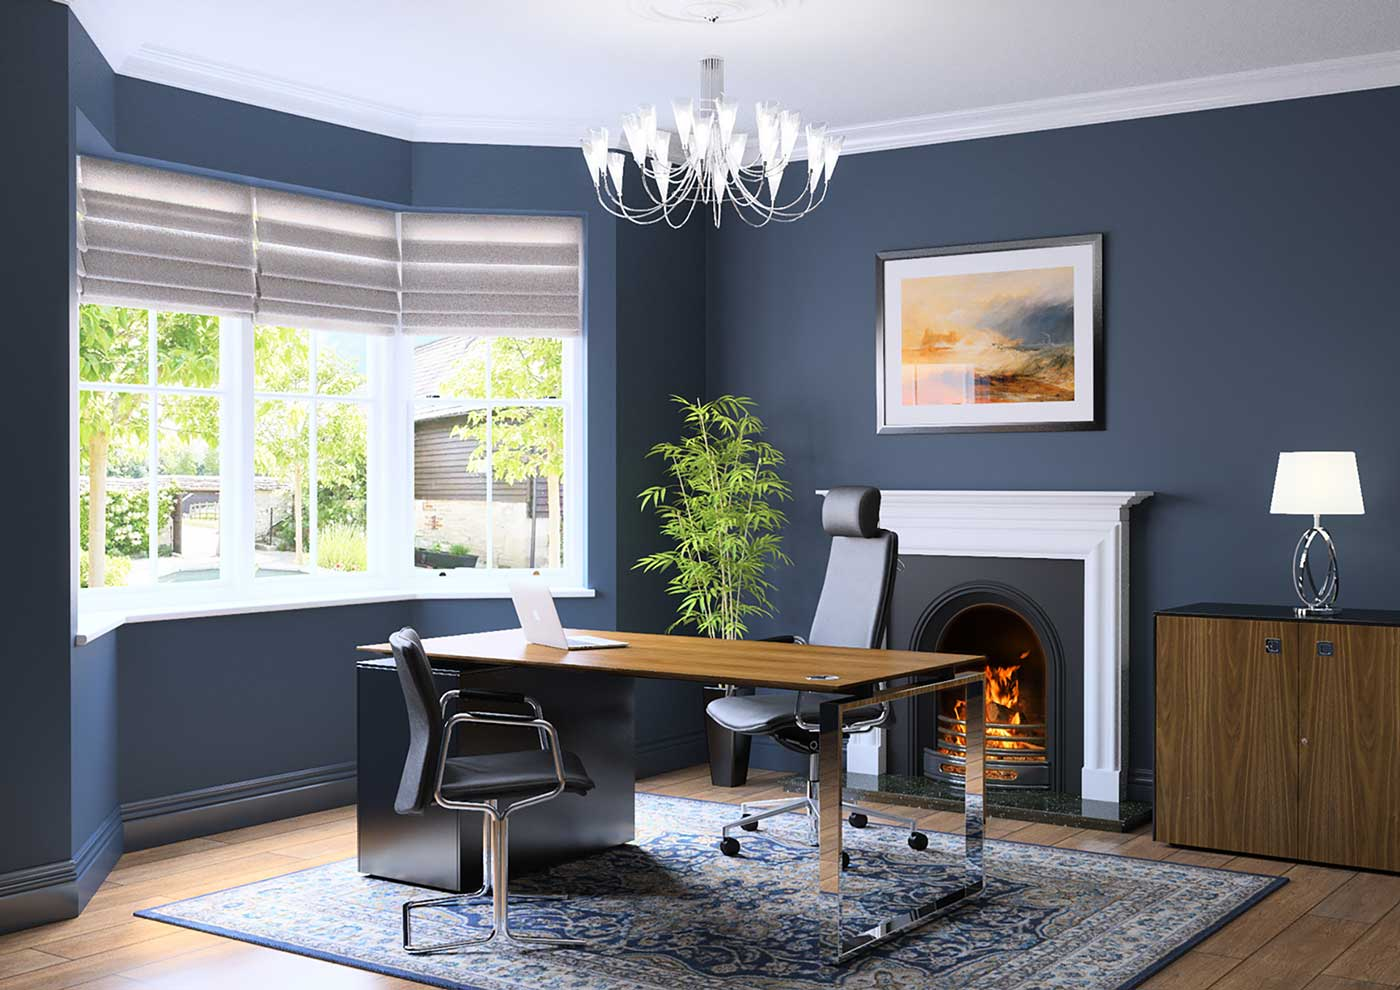 Make yourself at home in your home office